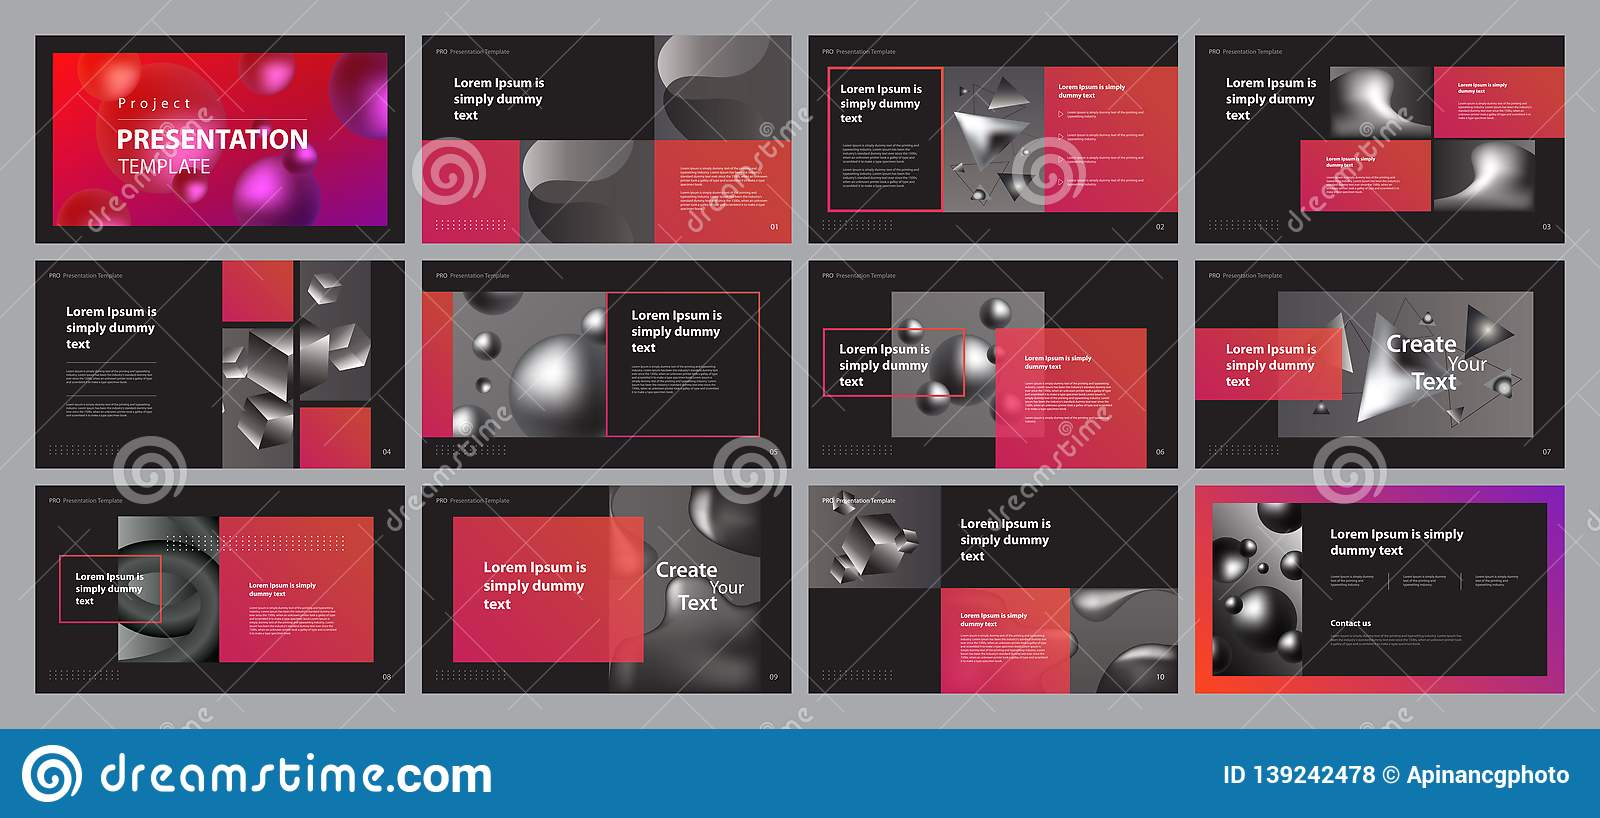 Business Presentation Design Template With Page Layout